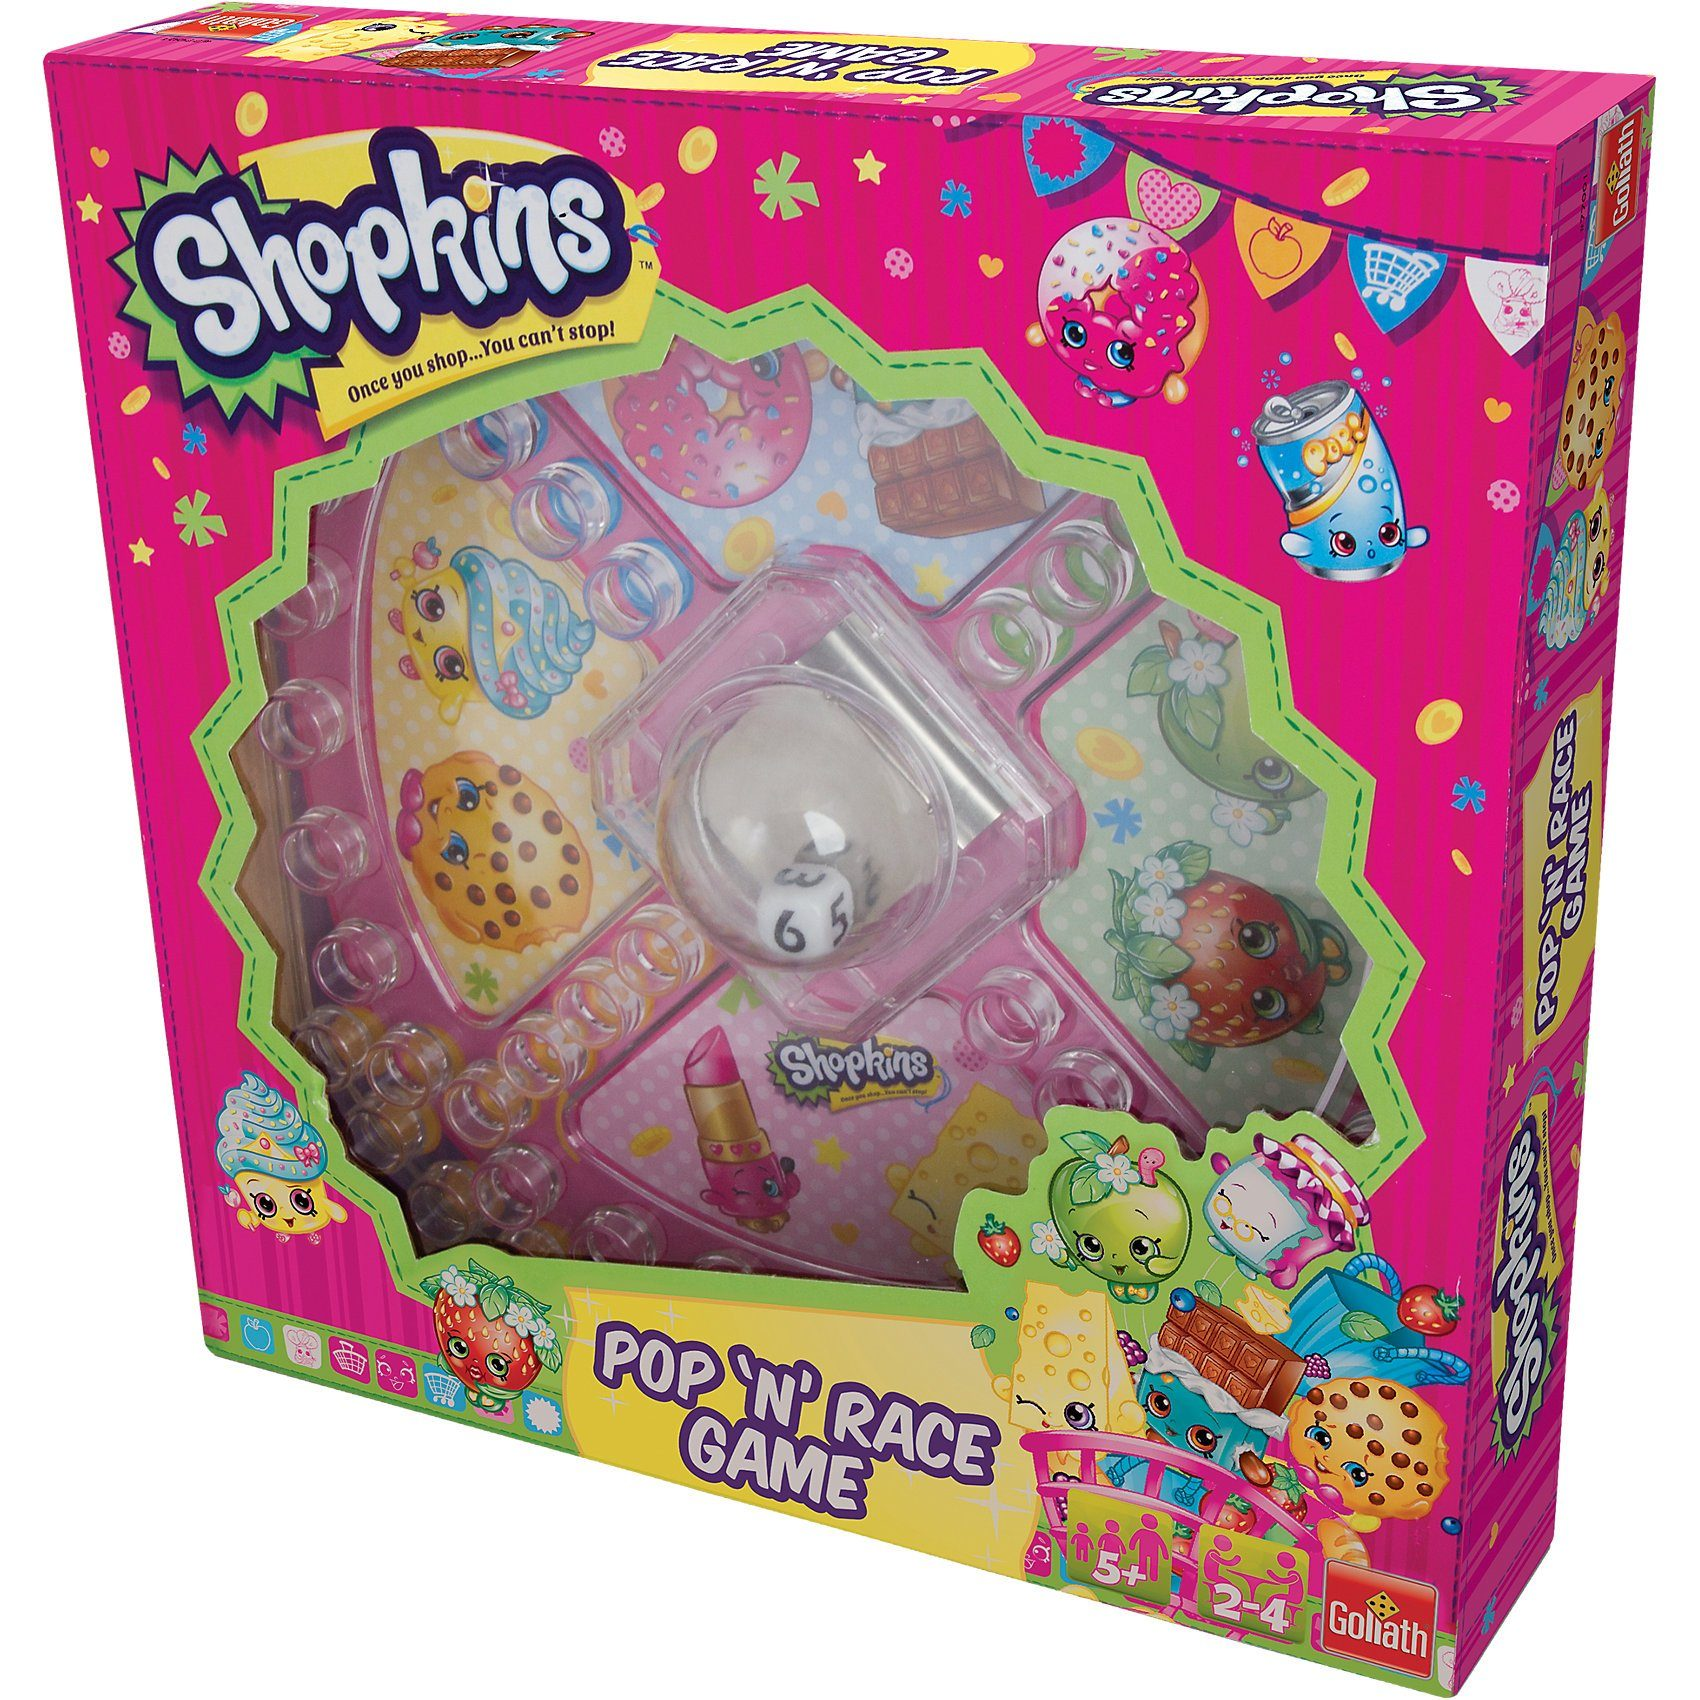 Goliath Shopkins Pop 'n' Race Game